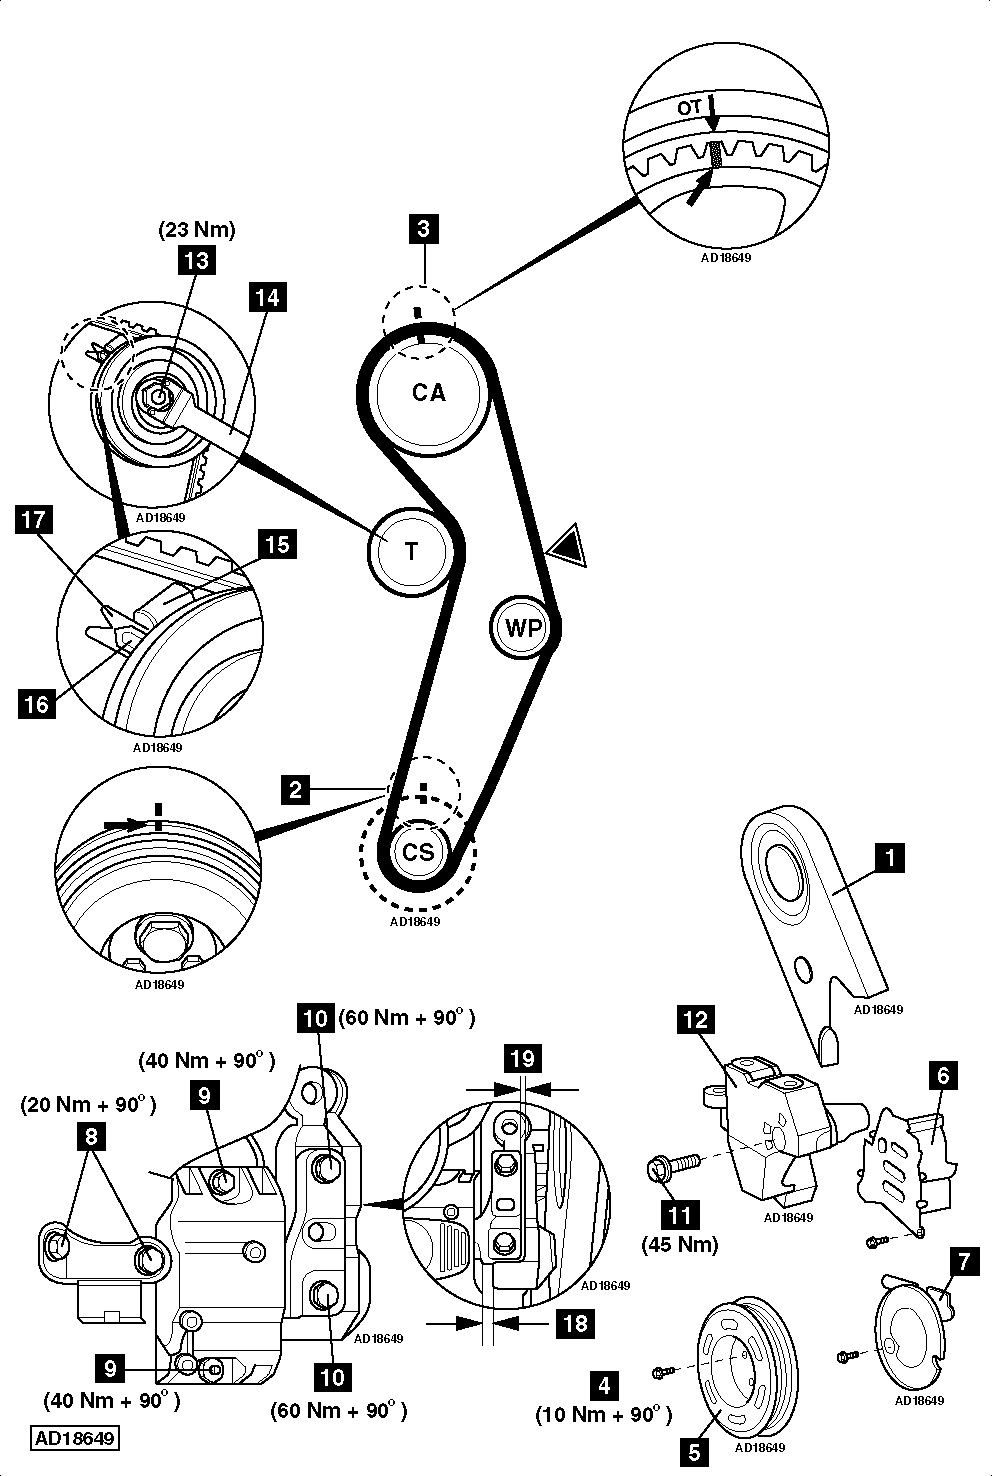 How-to-Replace-timing-belt-on-Audi-A3-1.6-2005-2012